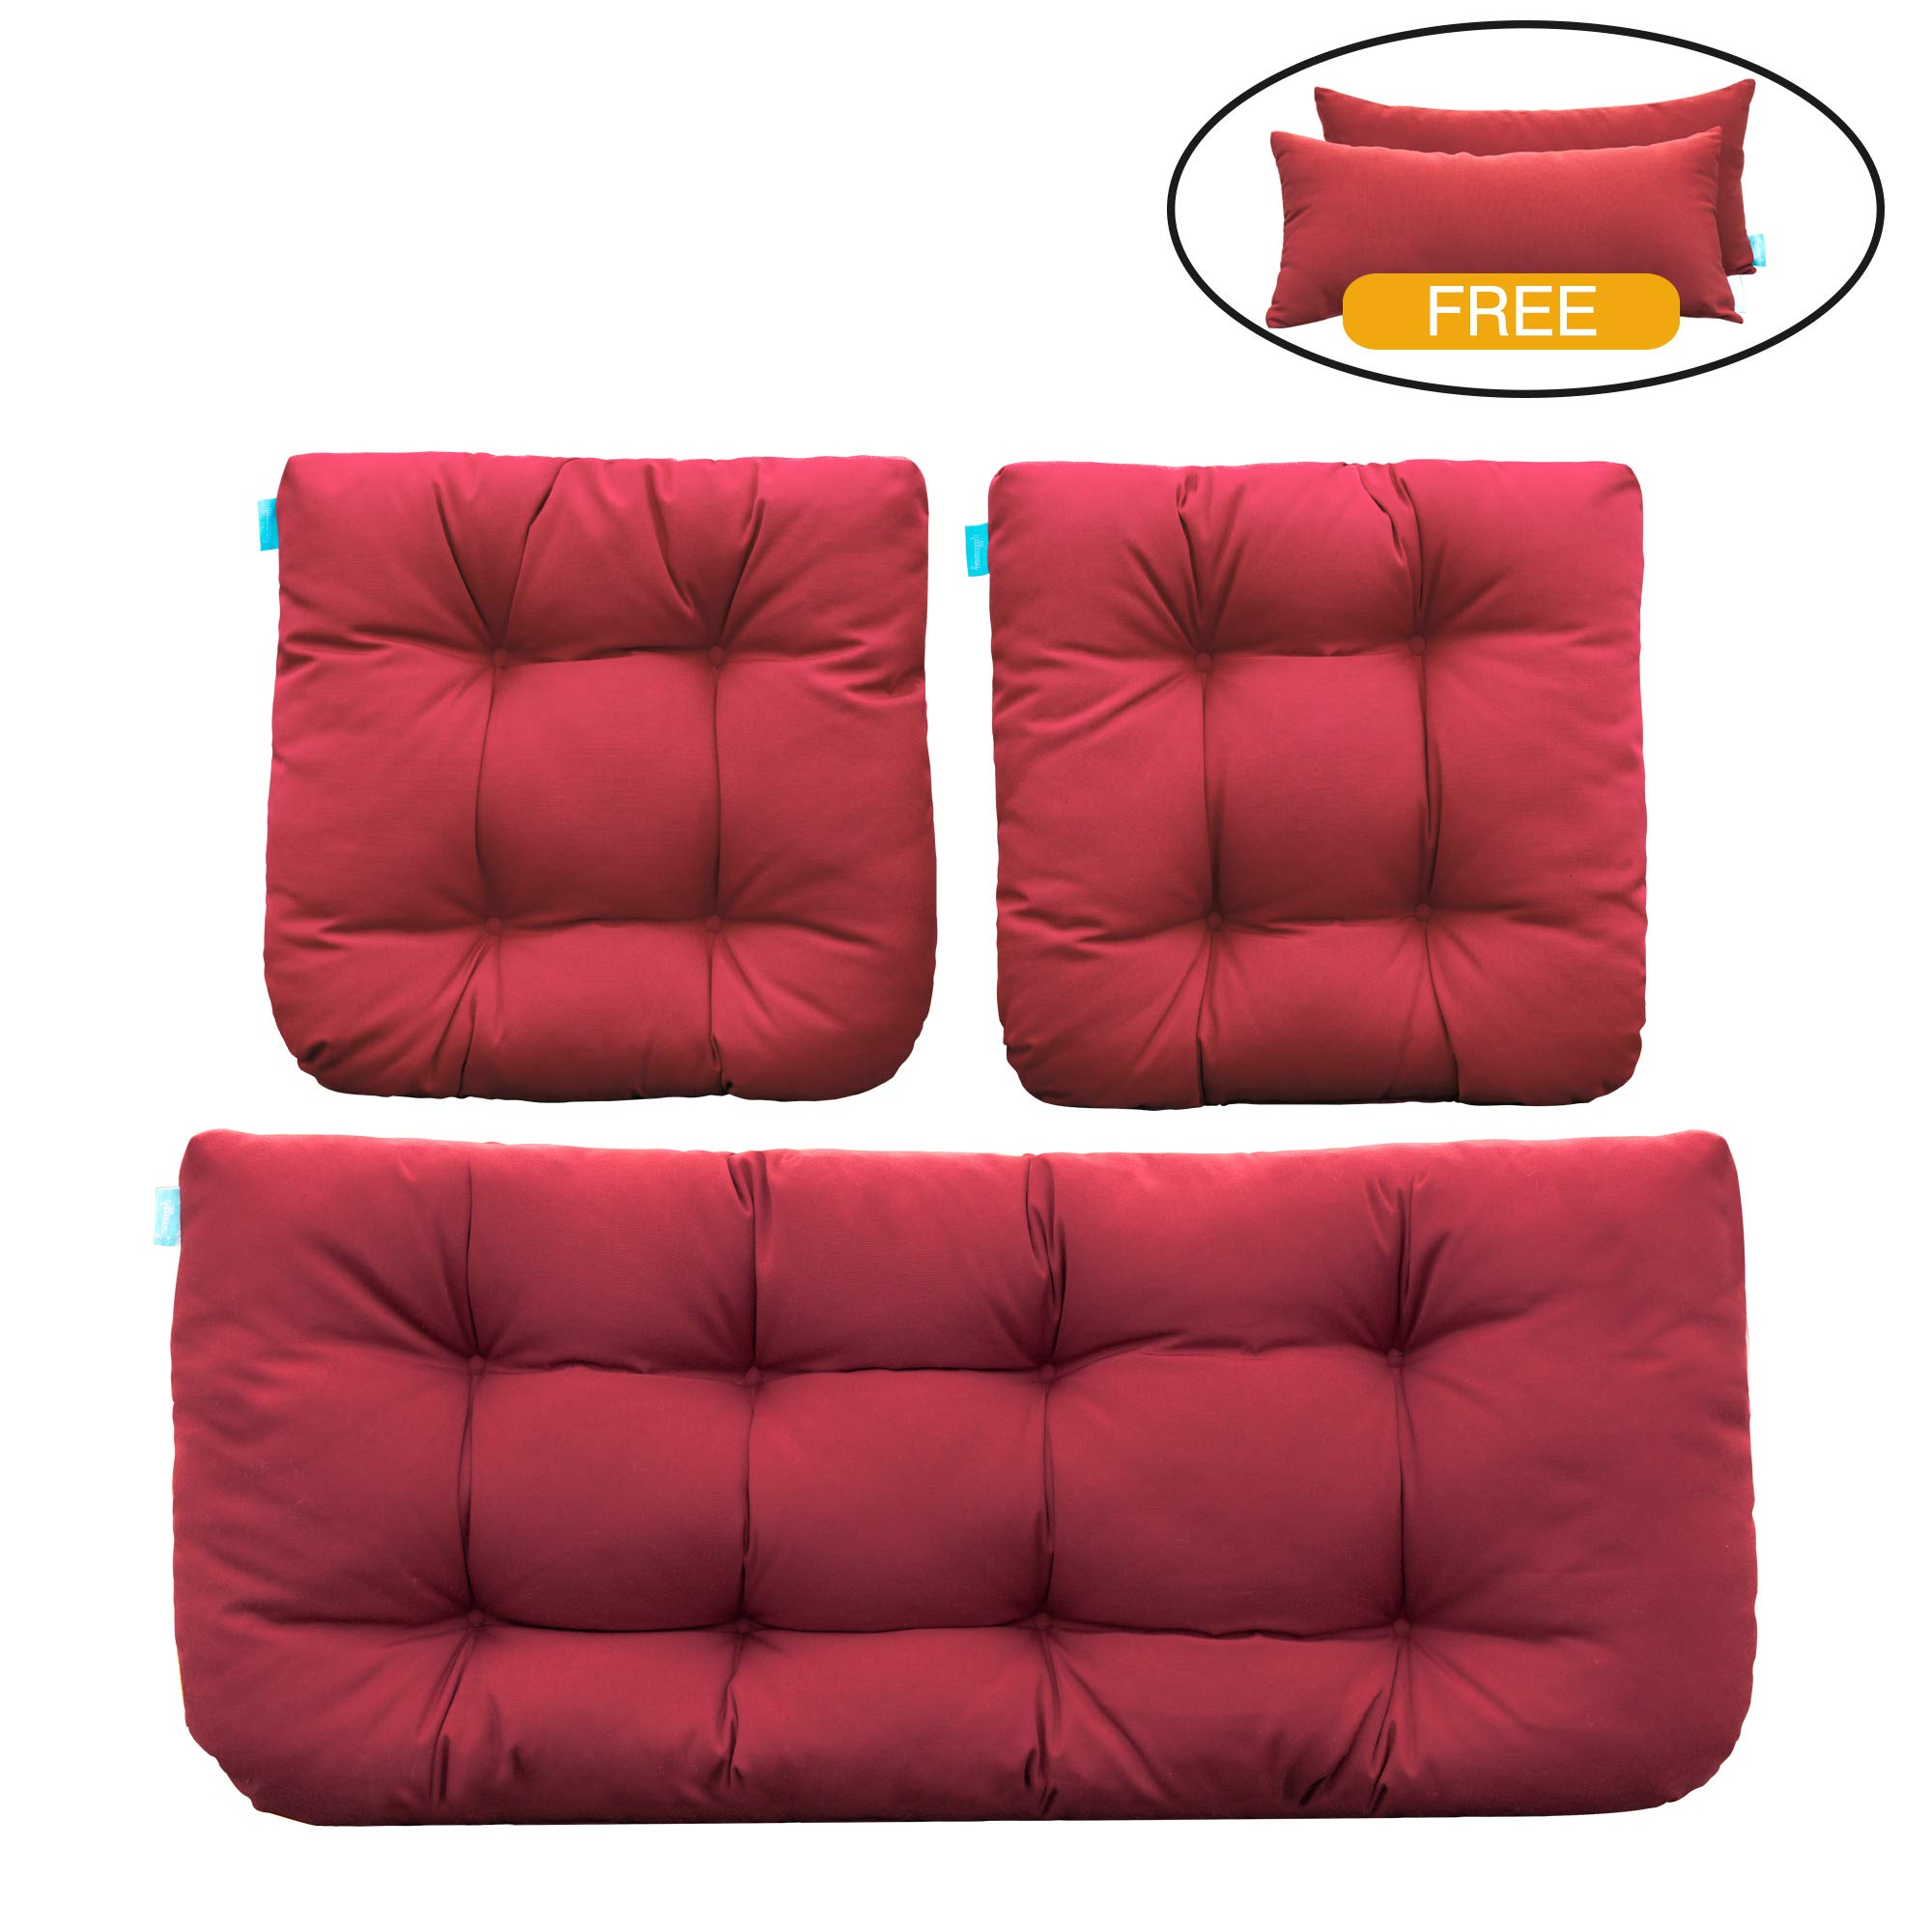 QILLOWAY Outdoor Patio Wicker Seat Cushions Group Loveseat/Two U-Shape/Two Lumbar Pillows For Patio Furniture,Wicker Loveseat,Bench,Porch,Settee of 5(Red)